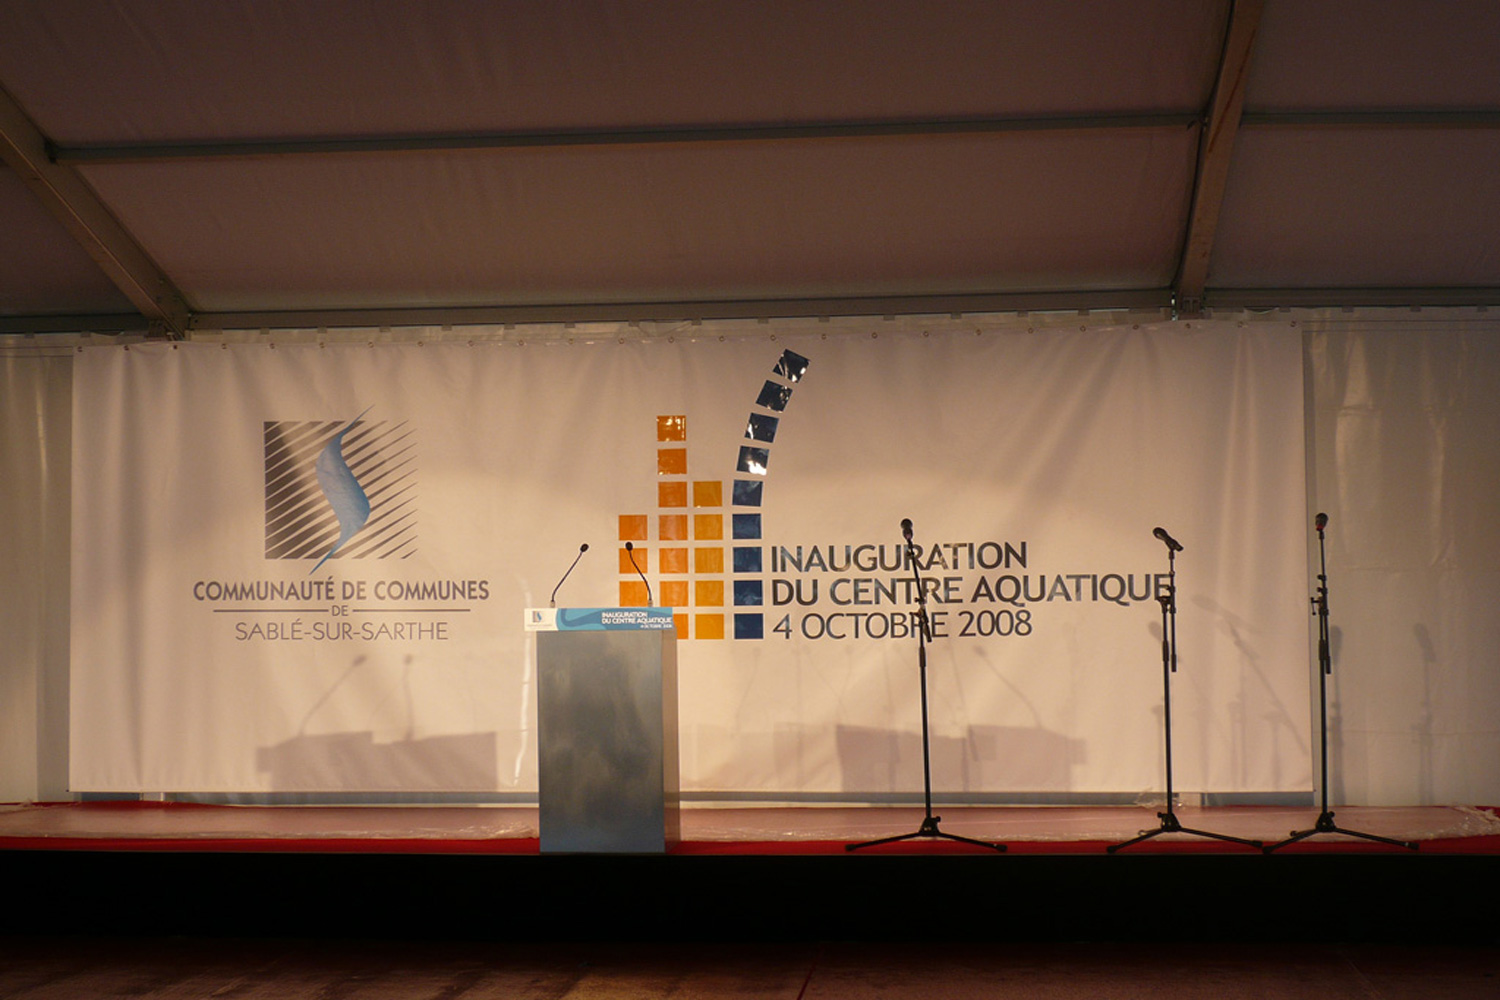 OpeningCeremonyProject2008>stage5.jpg